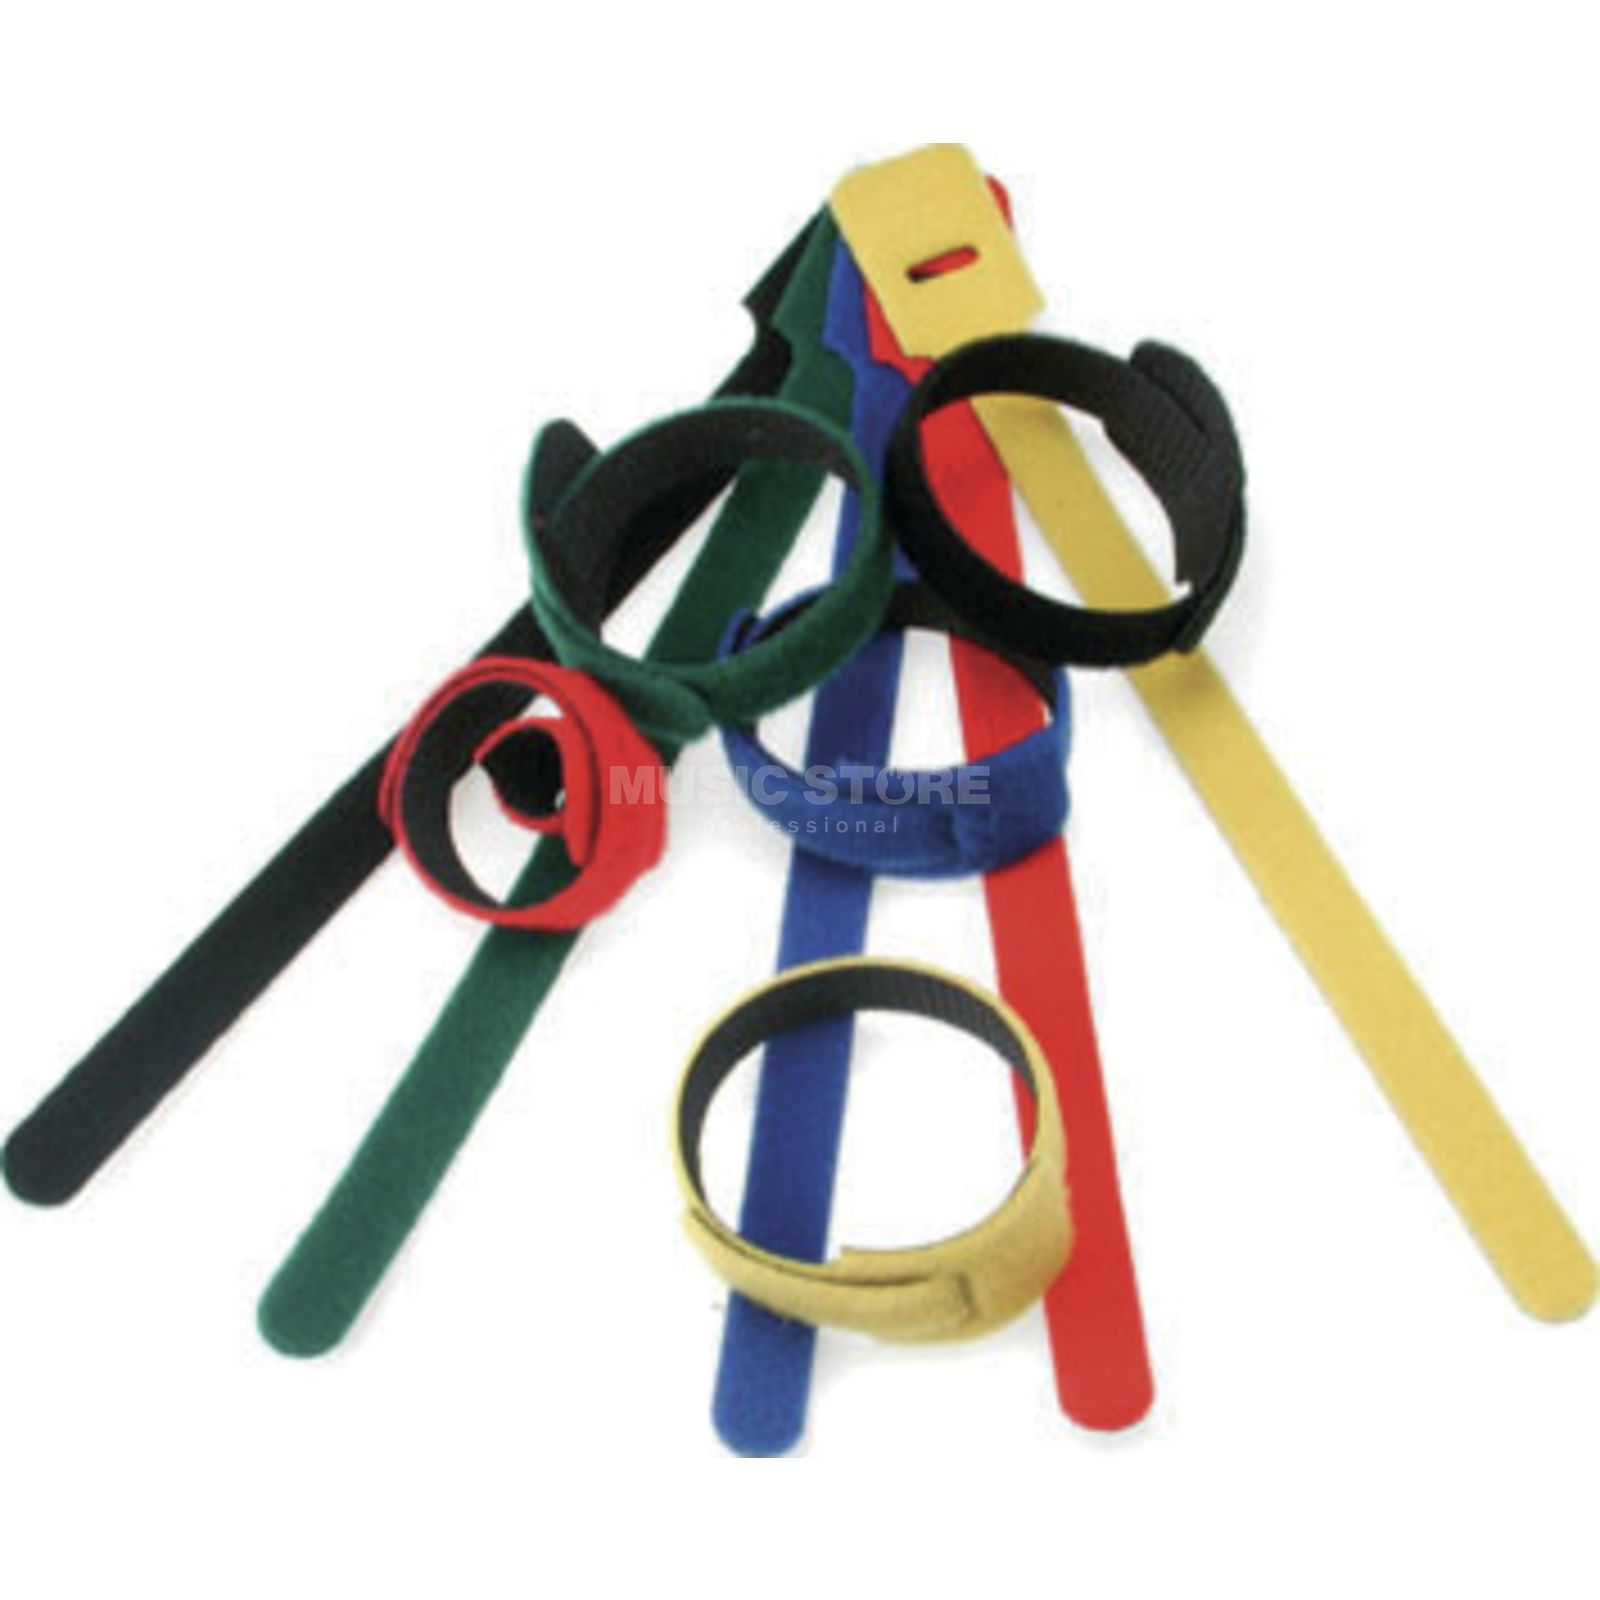 Klotz Cable Tie, Pack Of 5 Multi Coloured, 225mm Produktbillede